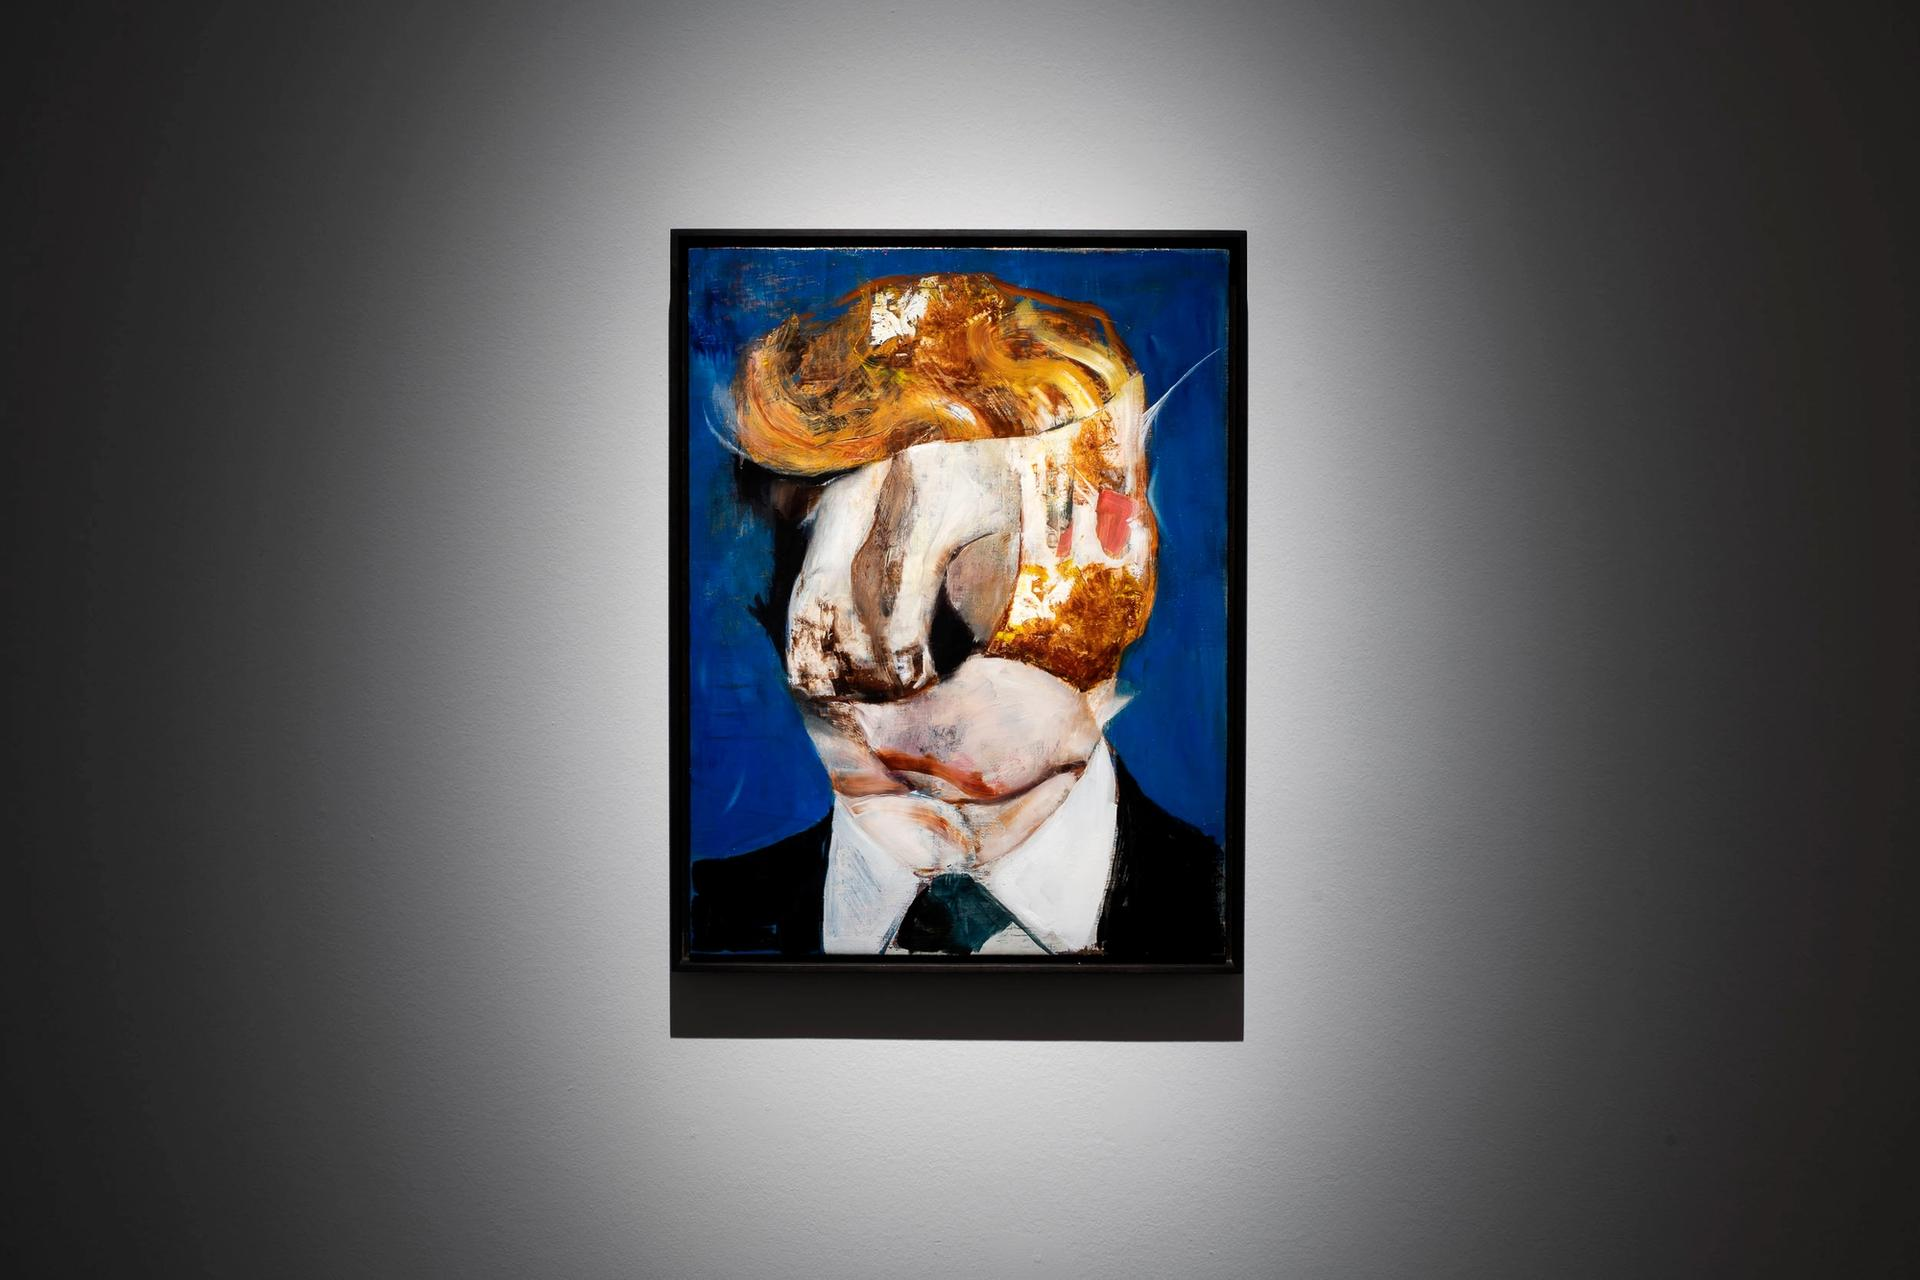 An installation image of one of Adrian Ghenie's Trump-inspired works, on show at the Palazzo Cini in Venice Courtesy Galerie Thaddaeus Ropac, Paris, London, Salzburg; and Fondazione Giorgio Cini Onlus, Venice. Photo: Matteo Defina